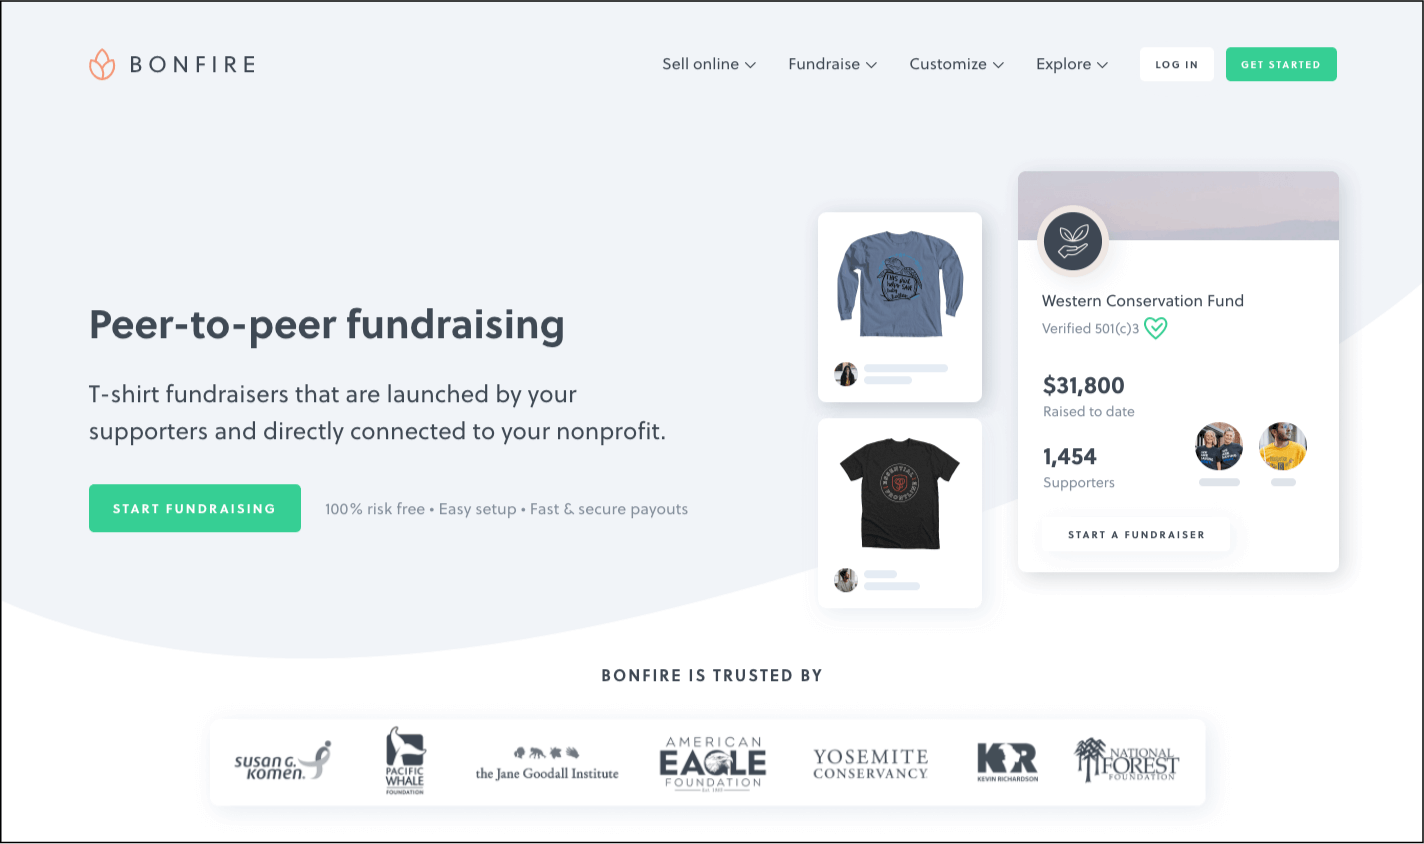 Learn more about Bonfire's peer-to-peer fundraising platform on their website.